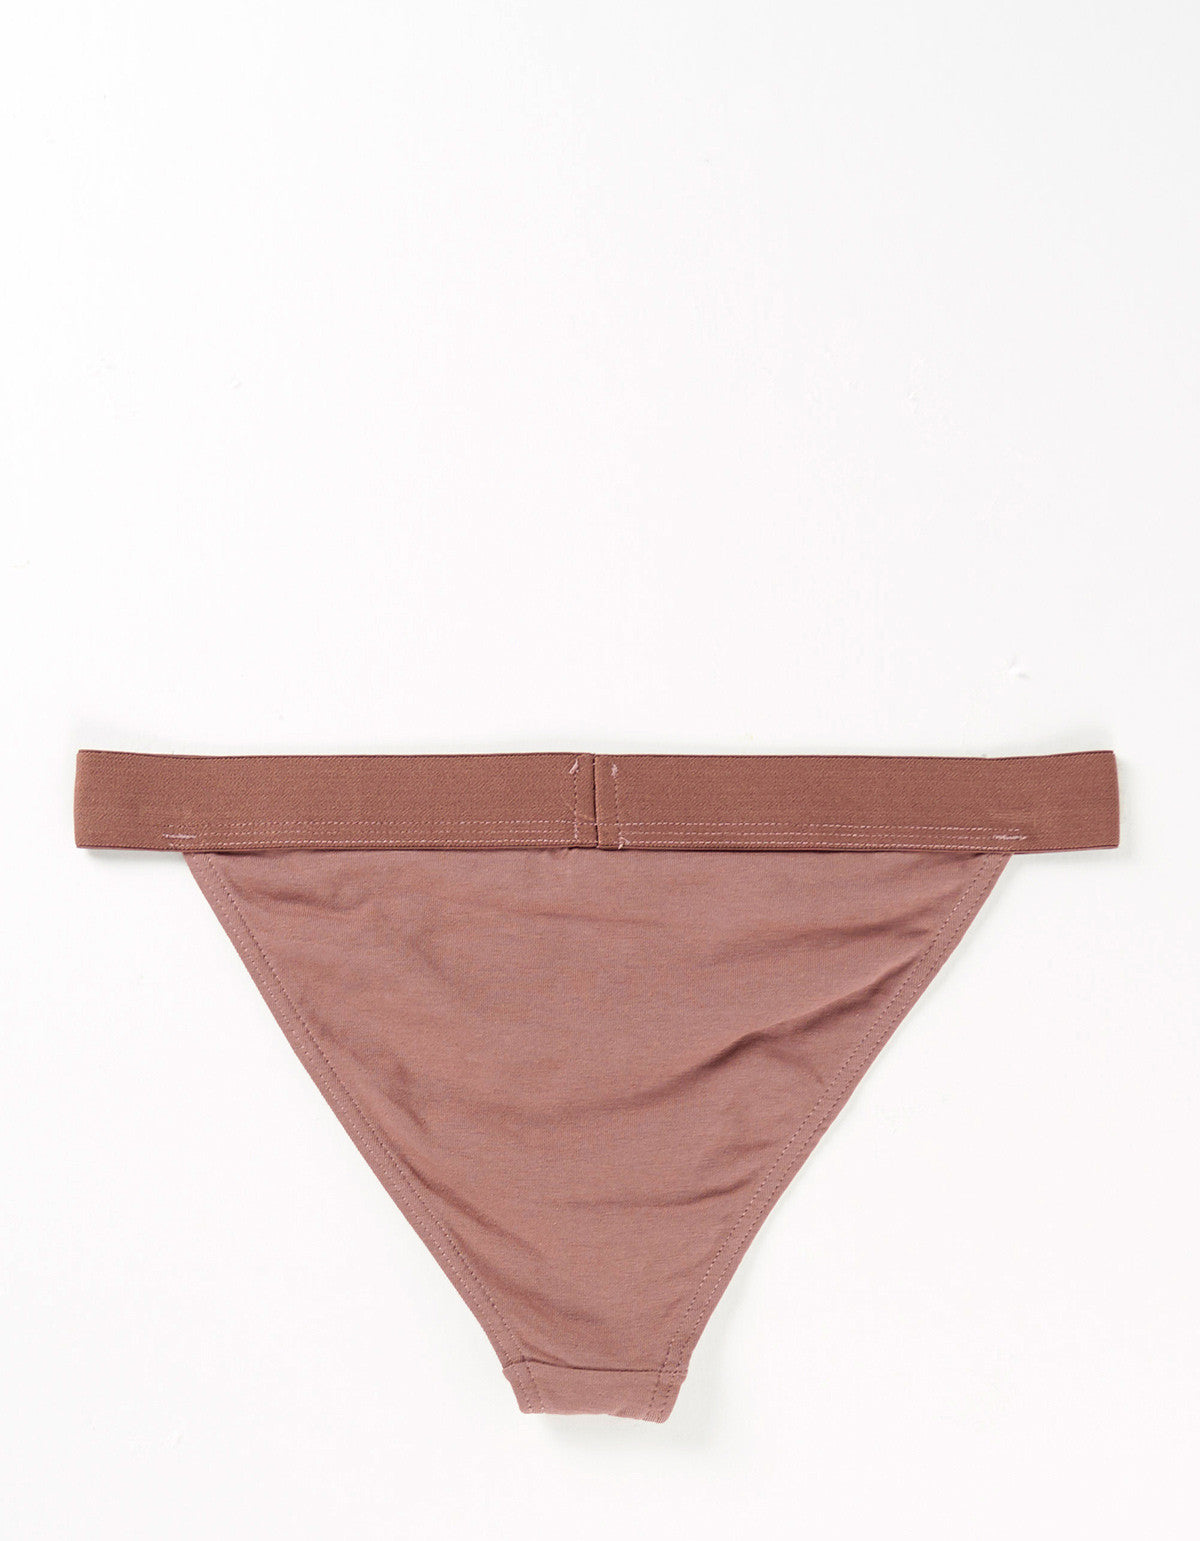 The Nude Label Triangle Brief Taupe - Still Life - 2